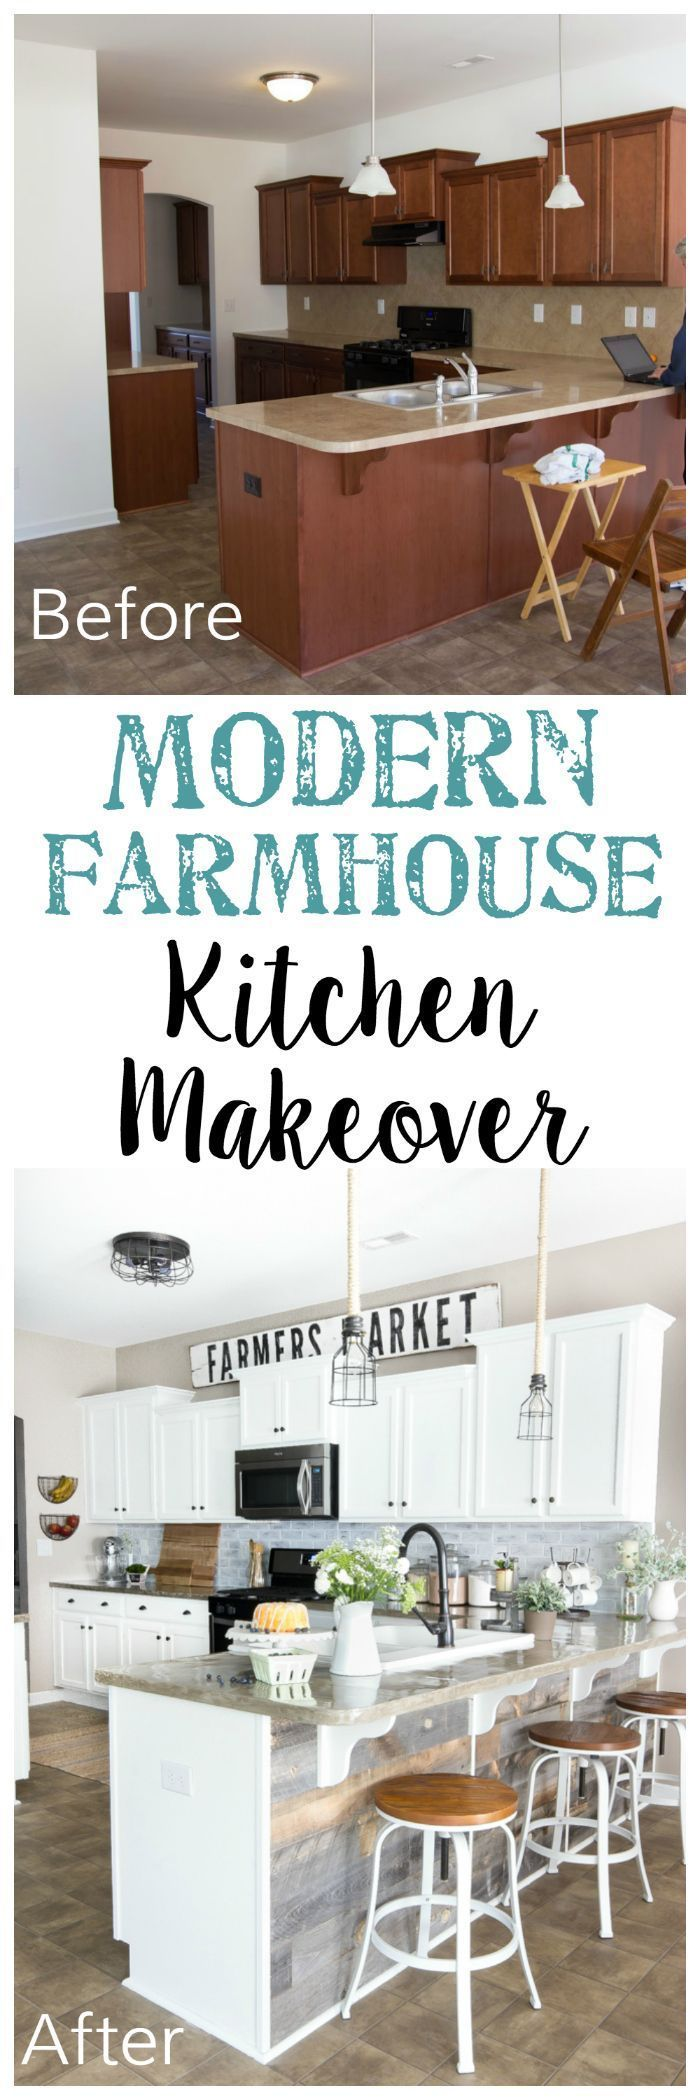 Our favorite fixer upper kitchen makeovers - Fixer Upper Kitchen